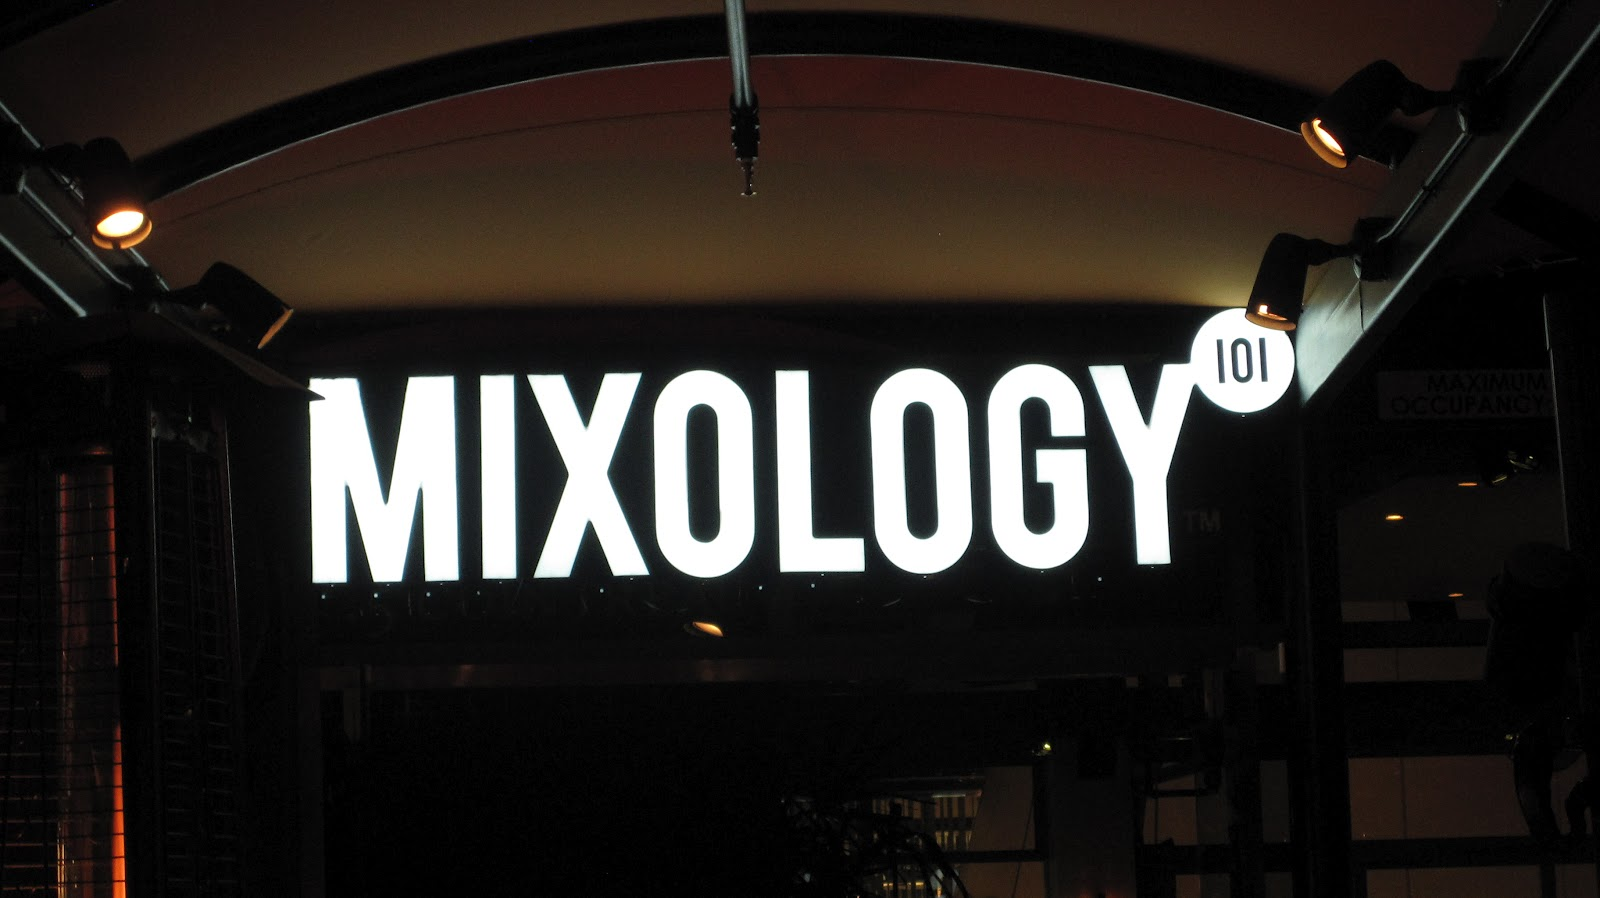 HM Selecta continues his monthly residency at Mixology 101, visited by celebrities from Cee-Lo to Jennifer Lopez. Stop by for a delicious dinner and a drink, or two, and enjoy his highly acclaimed music selection from 8pm to 12am.